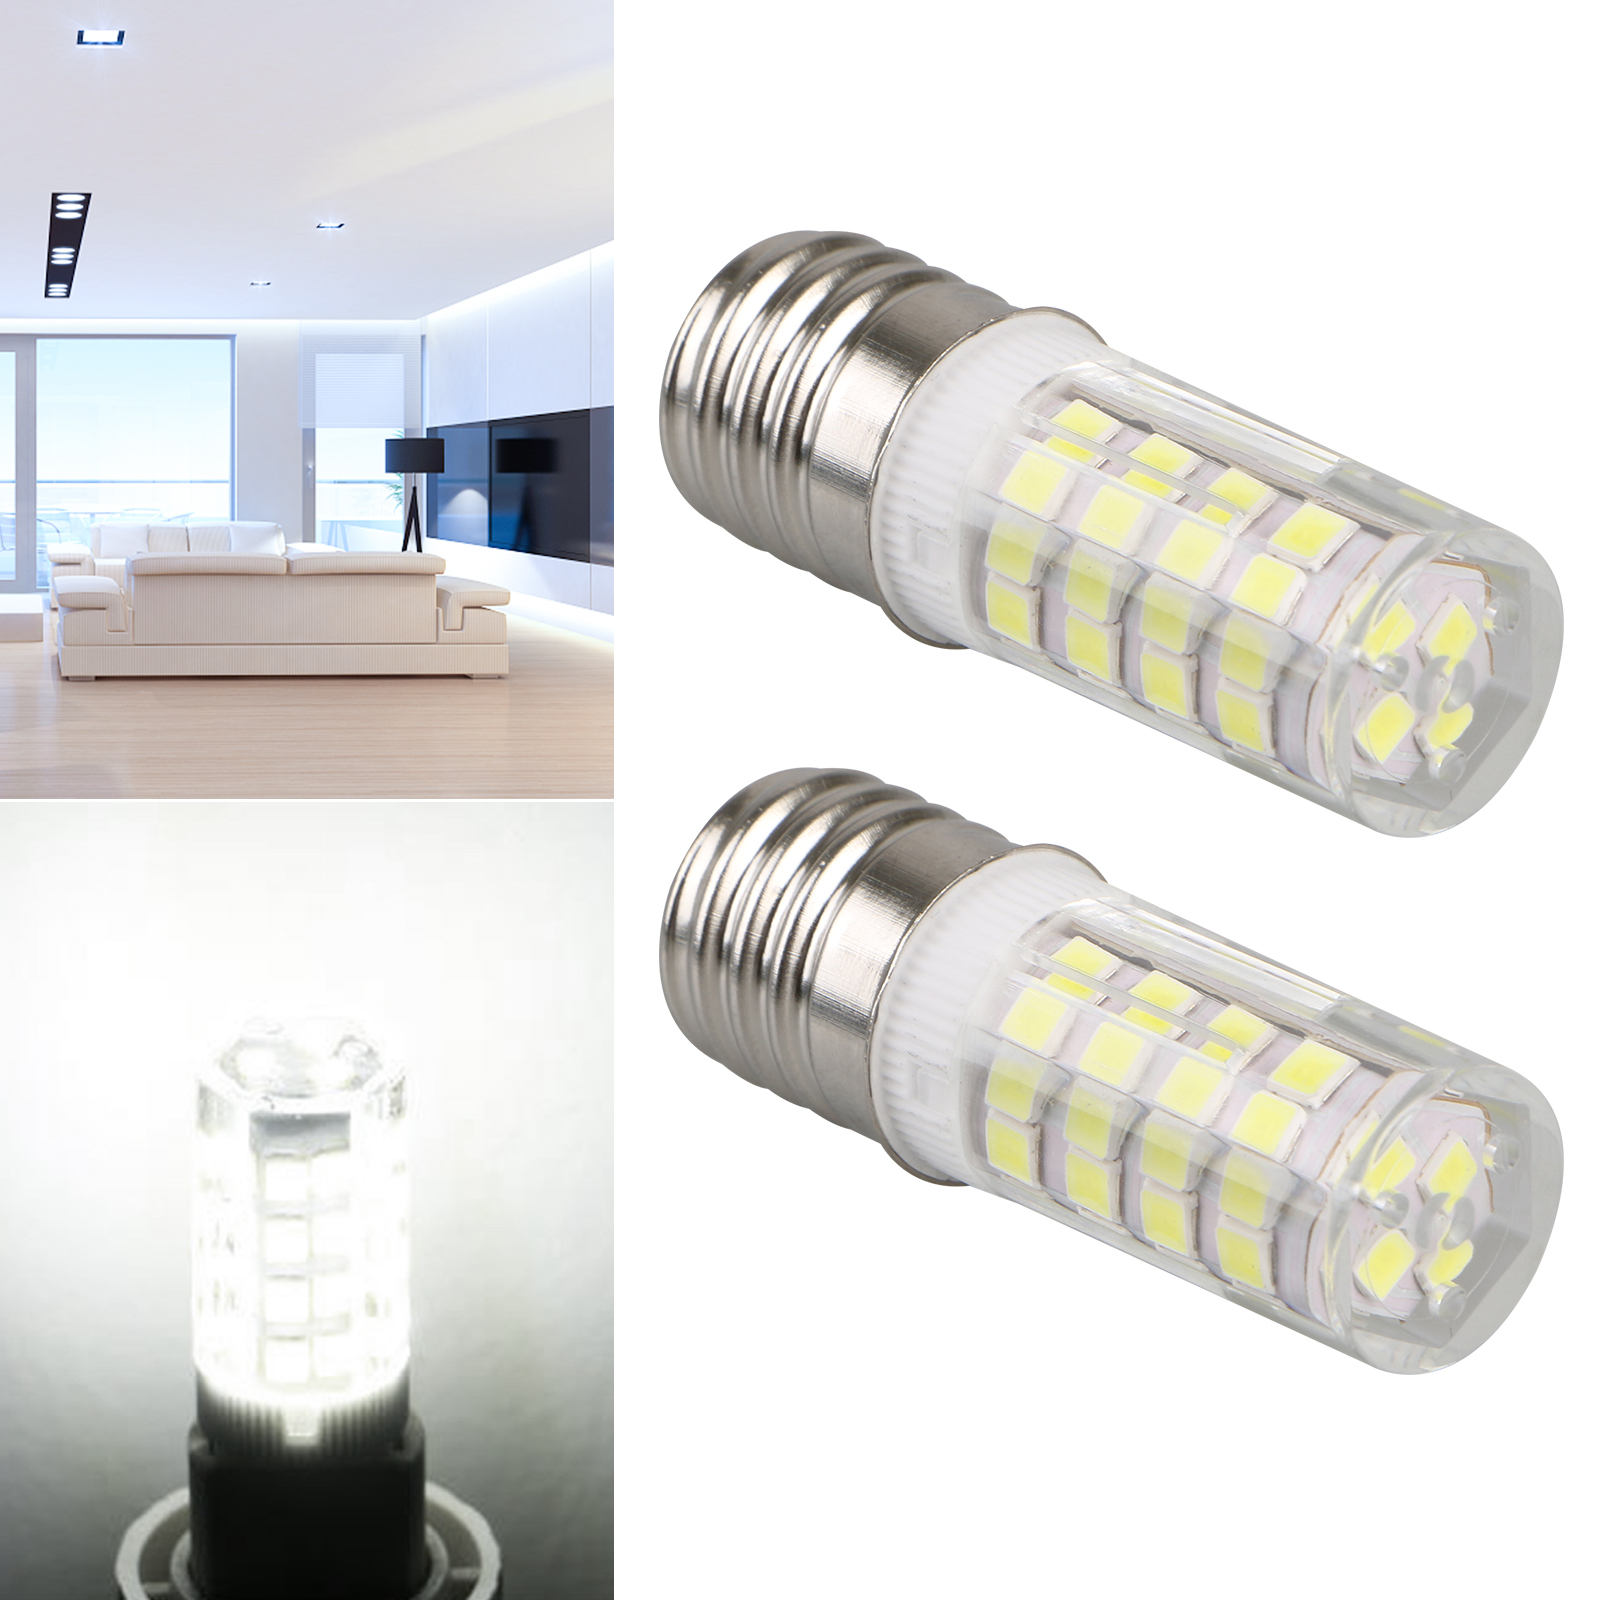 1-2PCS-E17-LED-Bulb-Microwave-Oven-Light-Dimmable-4W-Natural-White-6000K-Light thumbnail 4